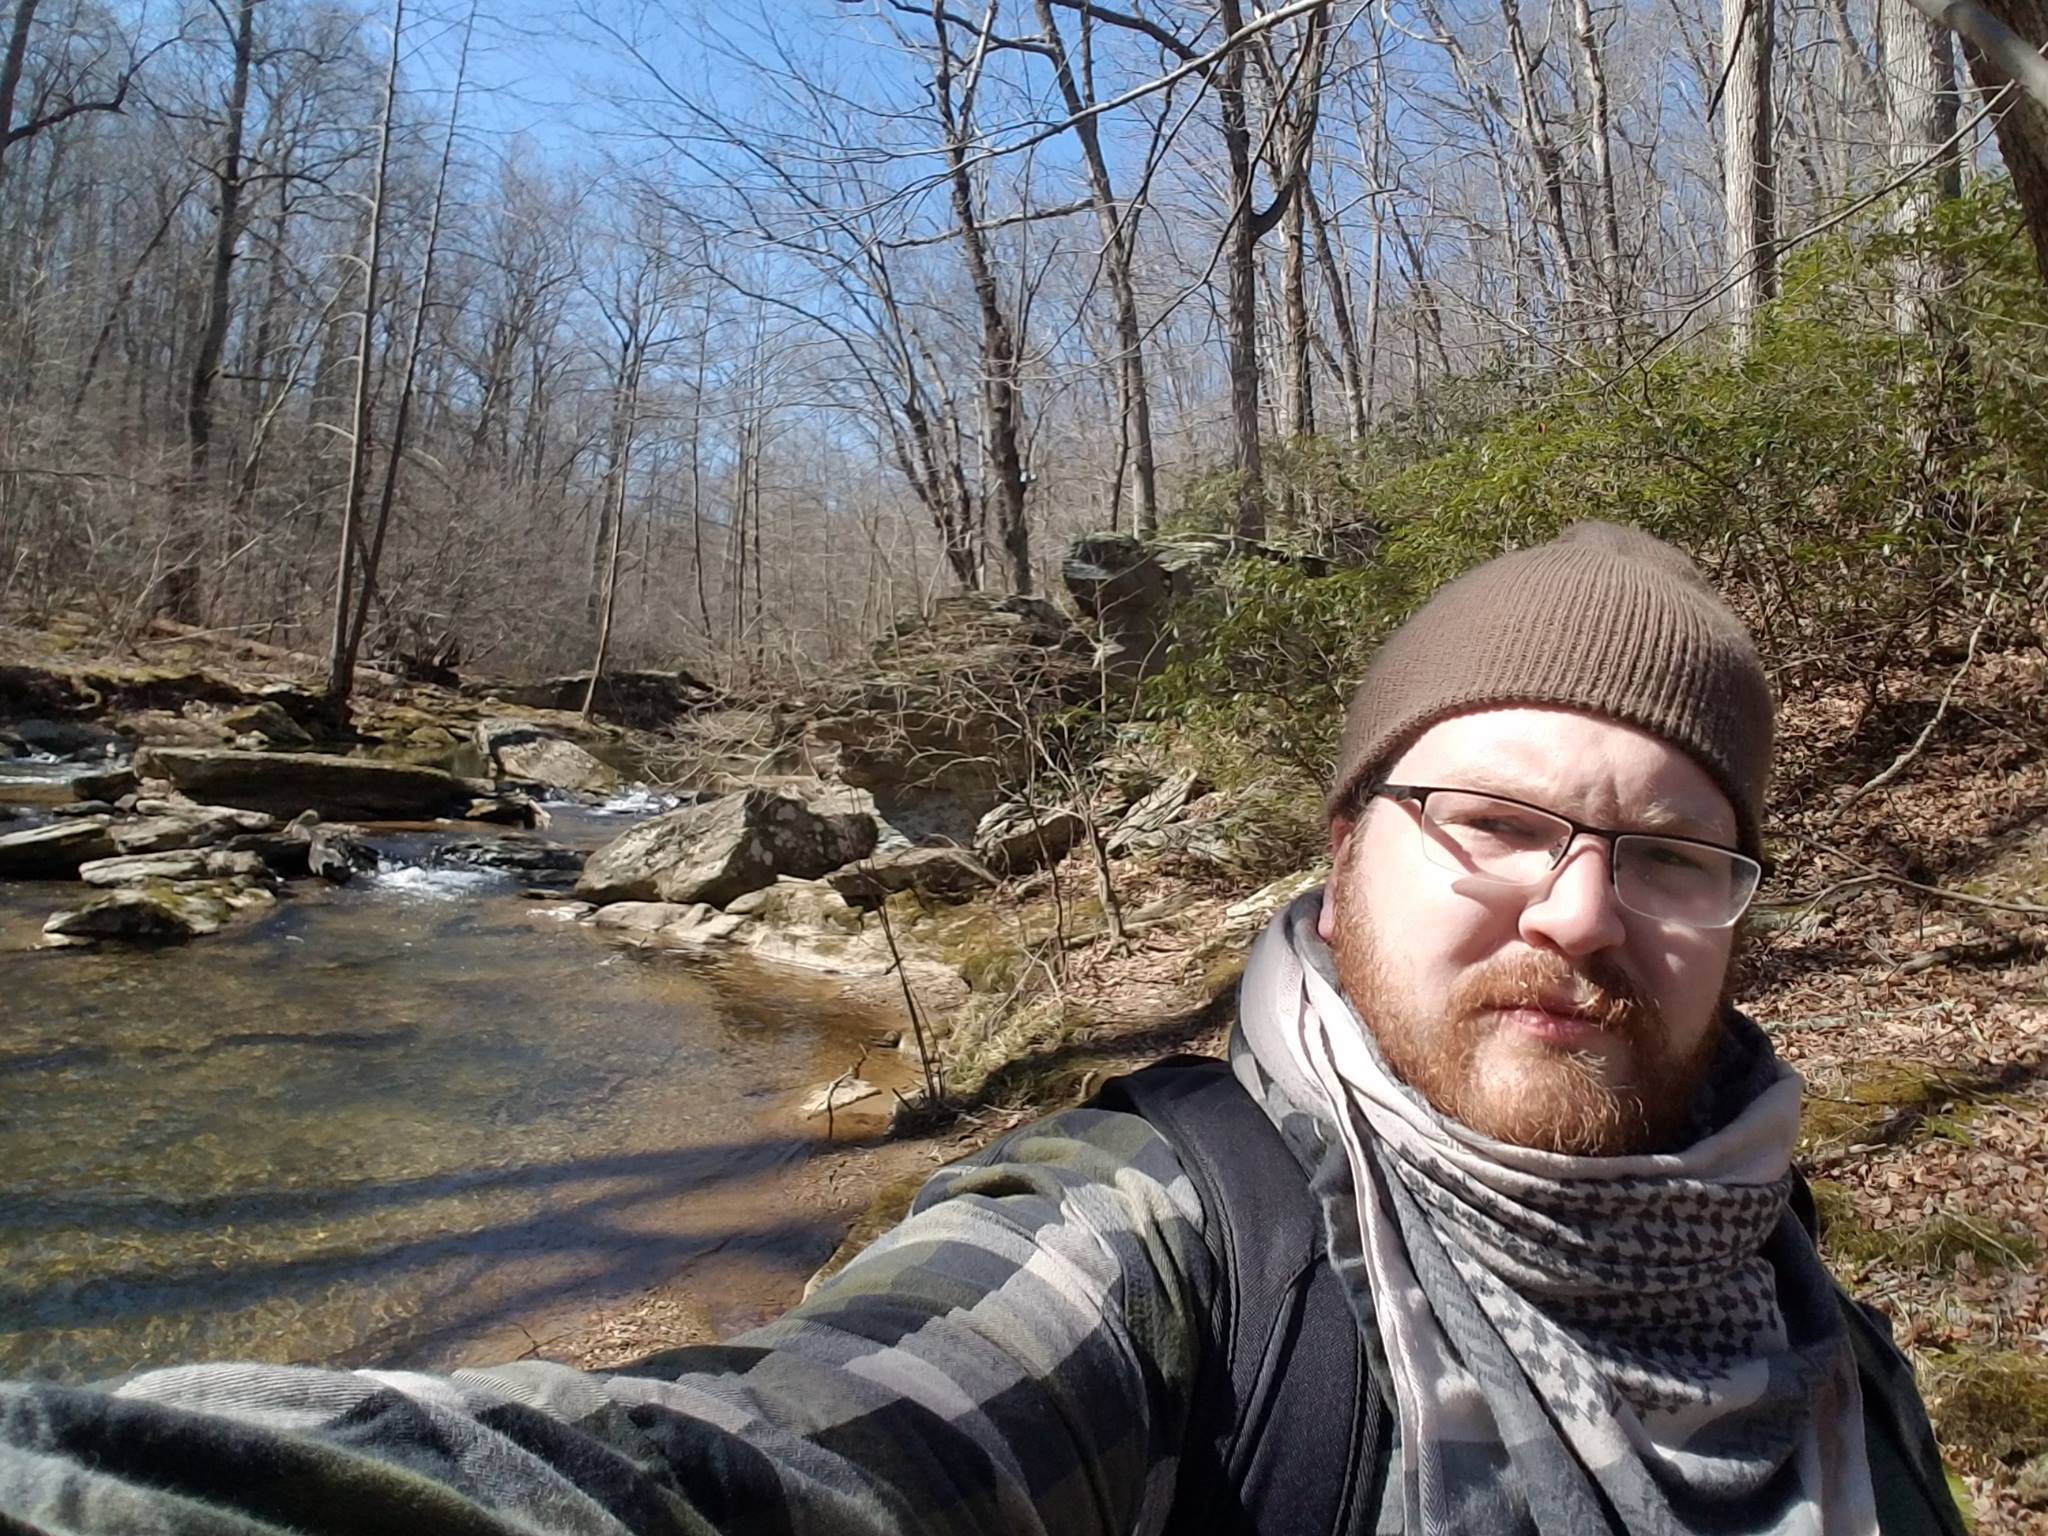 Picture of Matt Peiffer at Morgan Run Park in Carroll County, Maryland.